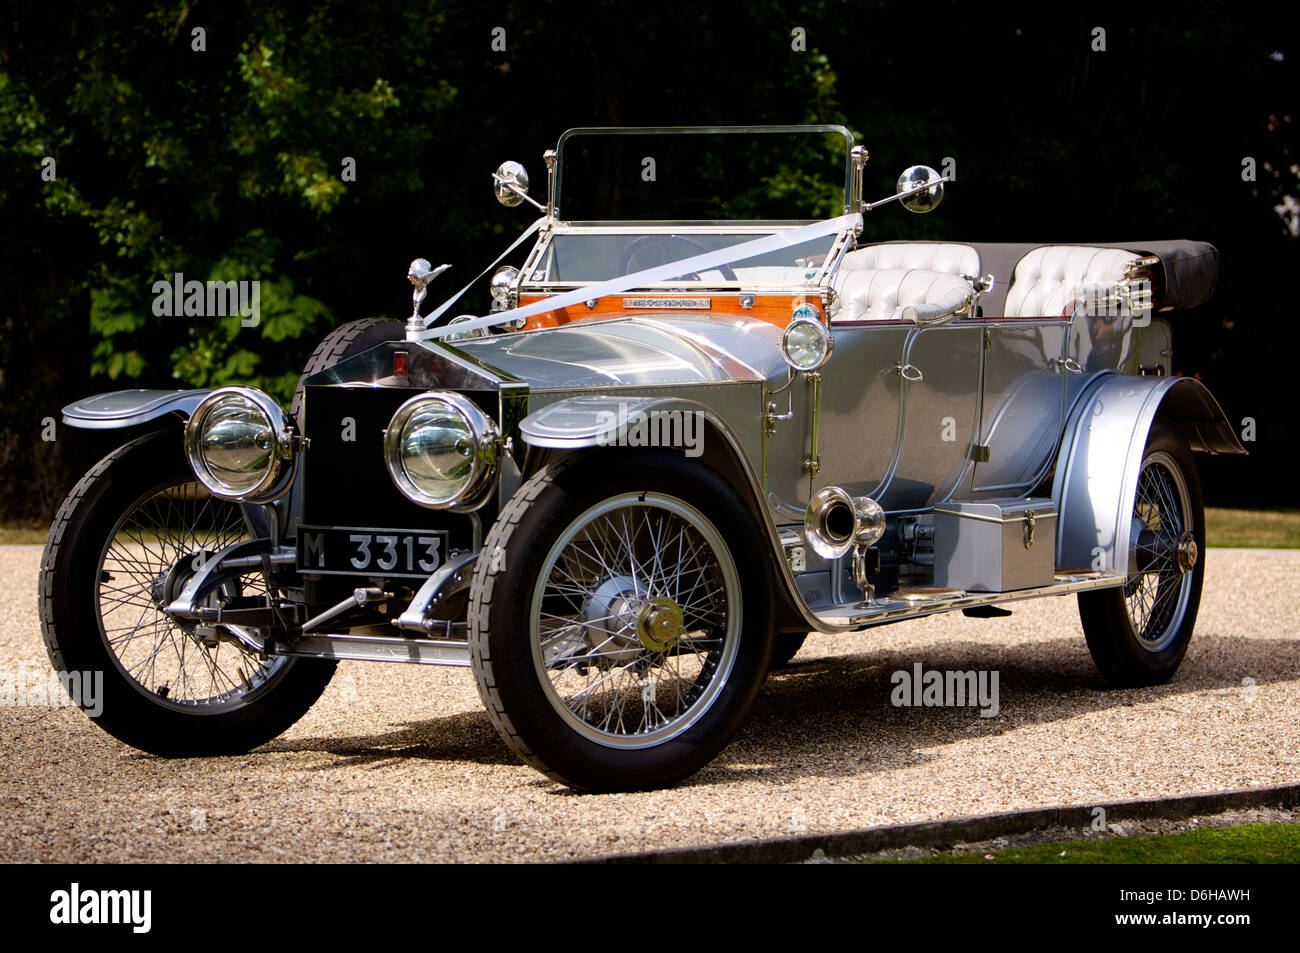 old fashioned silver rolls royce stock photo: 55700781 - alamy